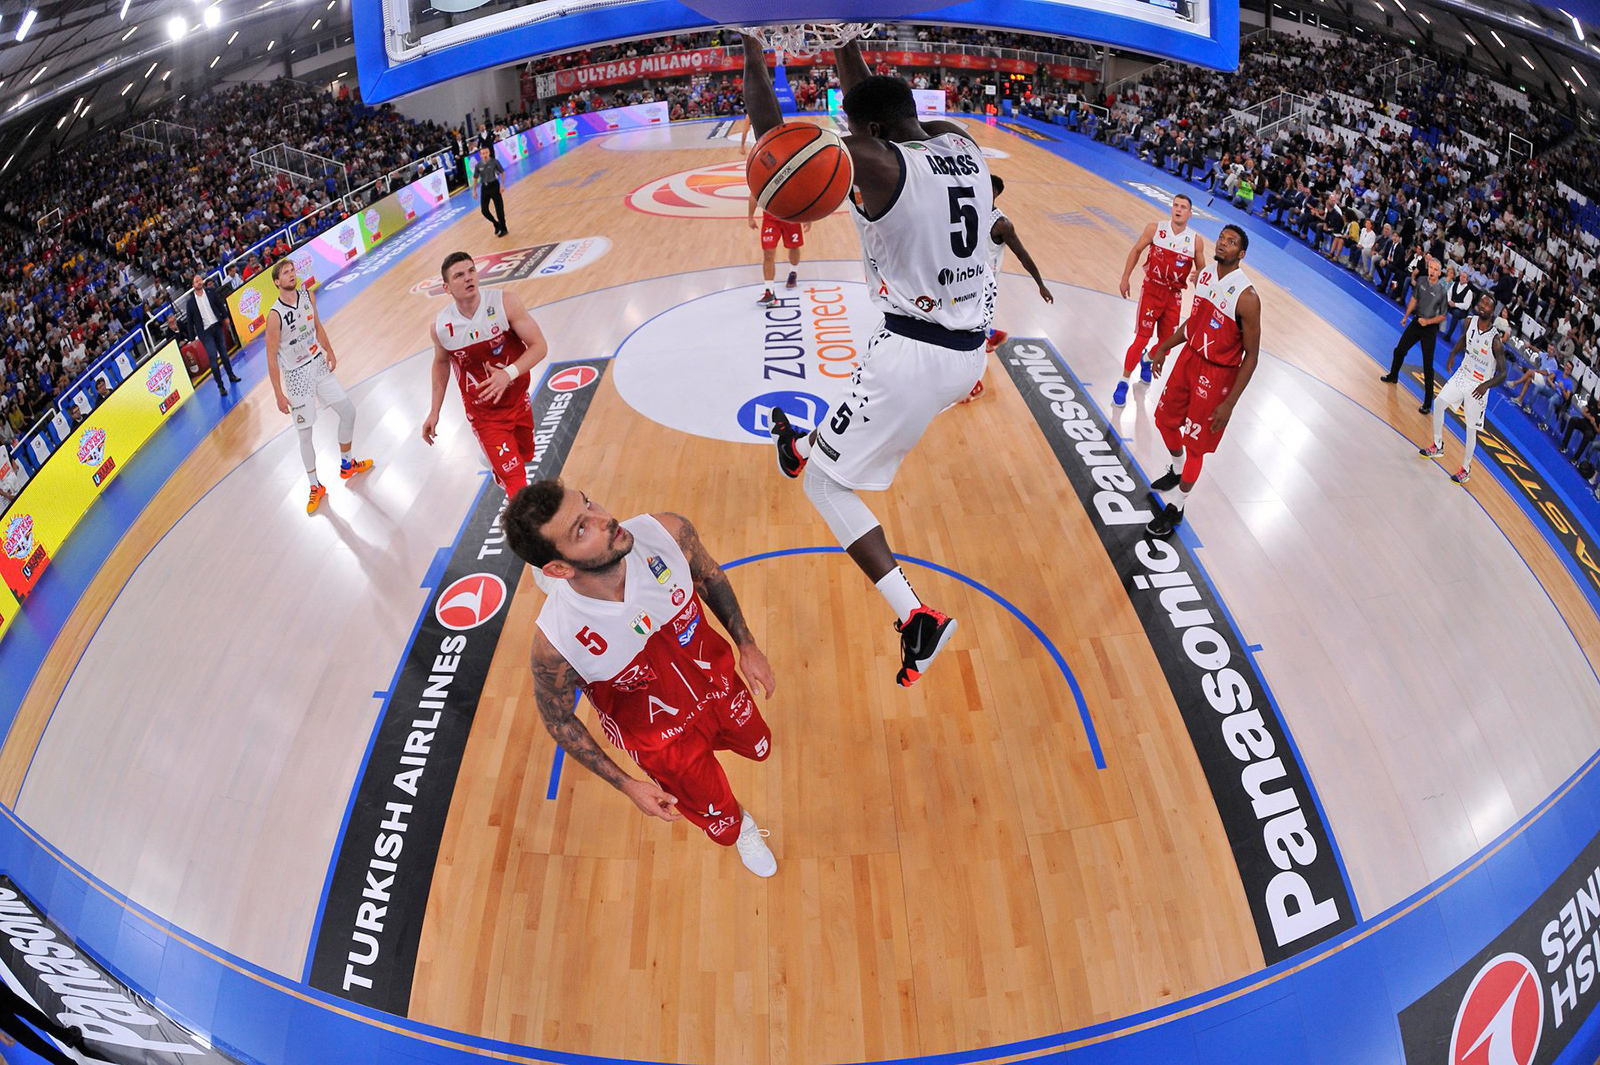 The portable parquet Dalla Riva triumphs in the Basketball Super Cup 2018